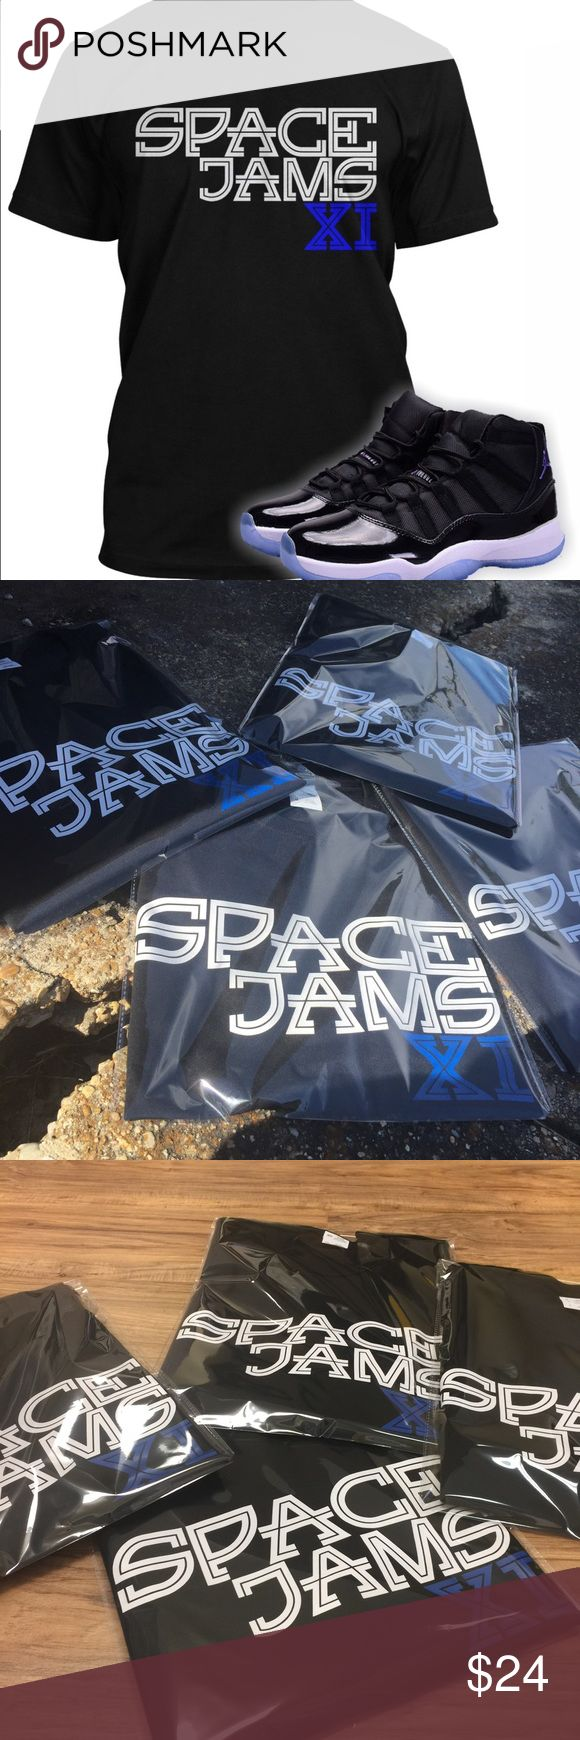 Space Jams Tee To Match Jordan 11 Shoes Space jams tee designed to match the Air Jordan 11 Space Jams Sneakers. Shirts are 50/50 polyester cotton blend. ShirtLife Clothing Shirts Tees - Short Sleeve